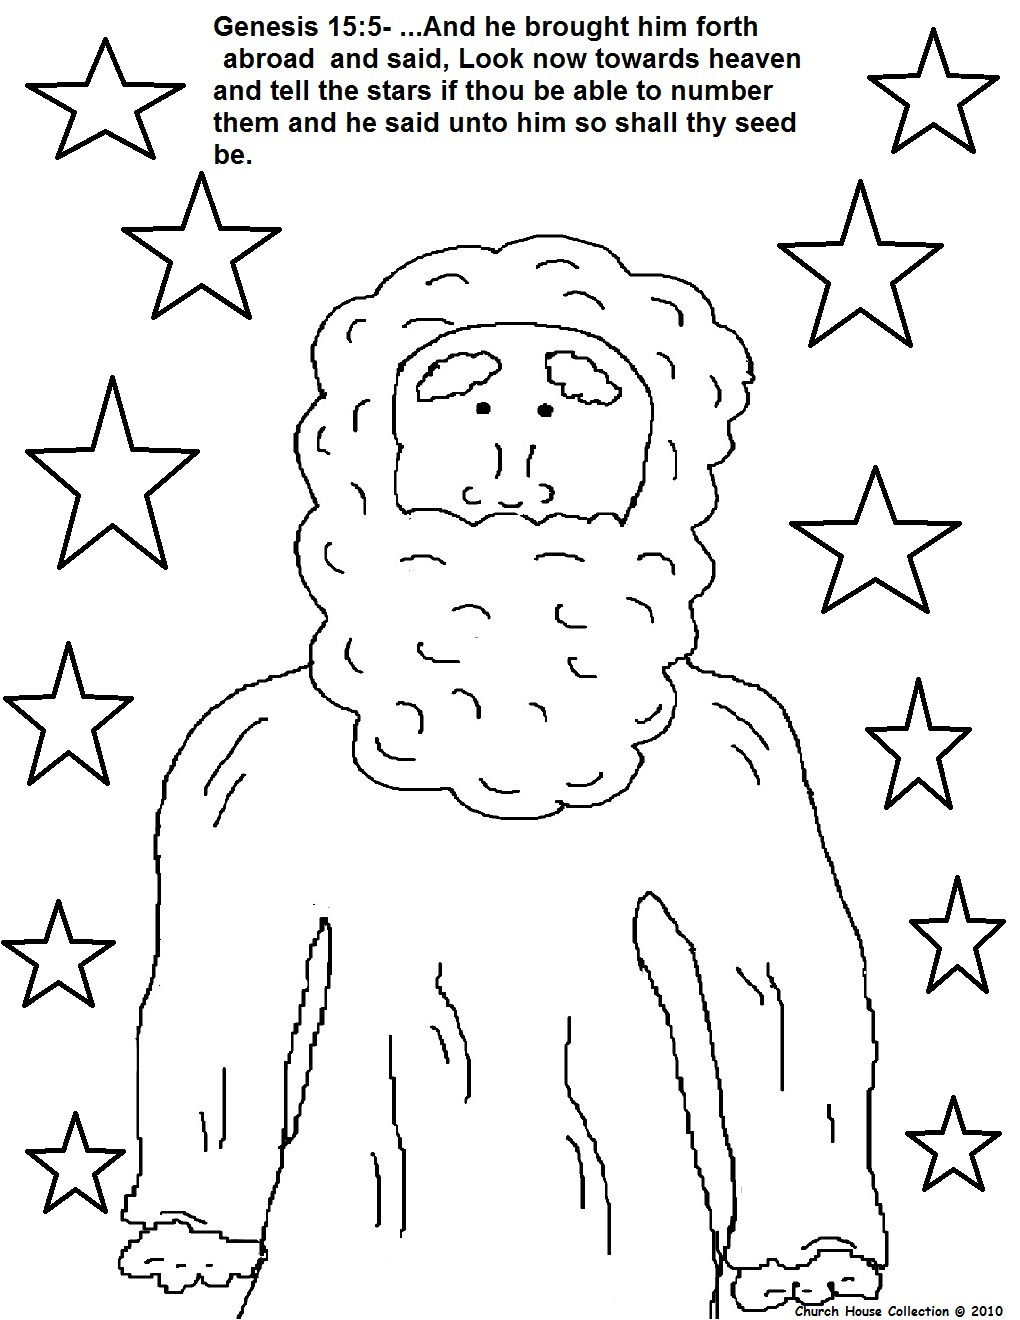 colouring page of descendants like stars from httpwwwchurchhousecollectioncomresourcesabraham20descendents20like20stars20coloring20pagejpg